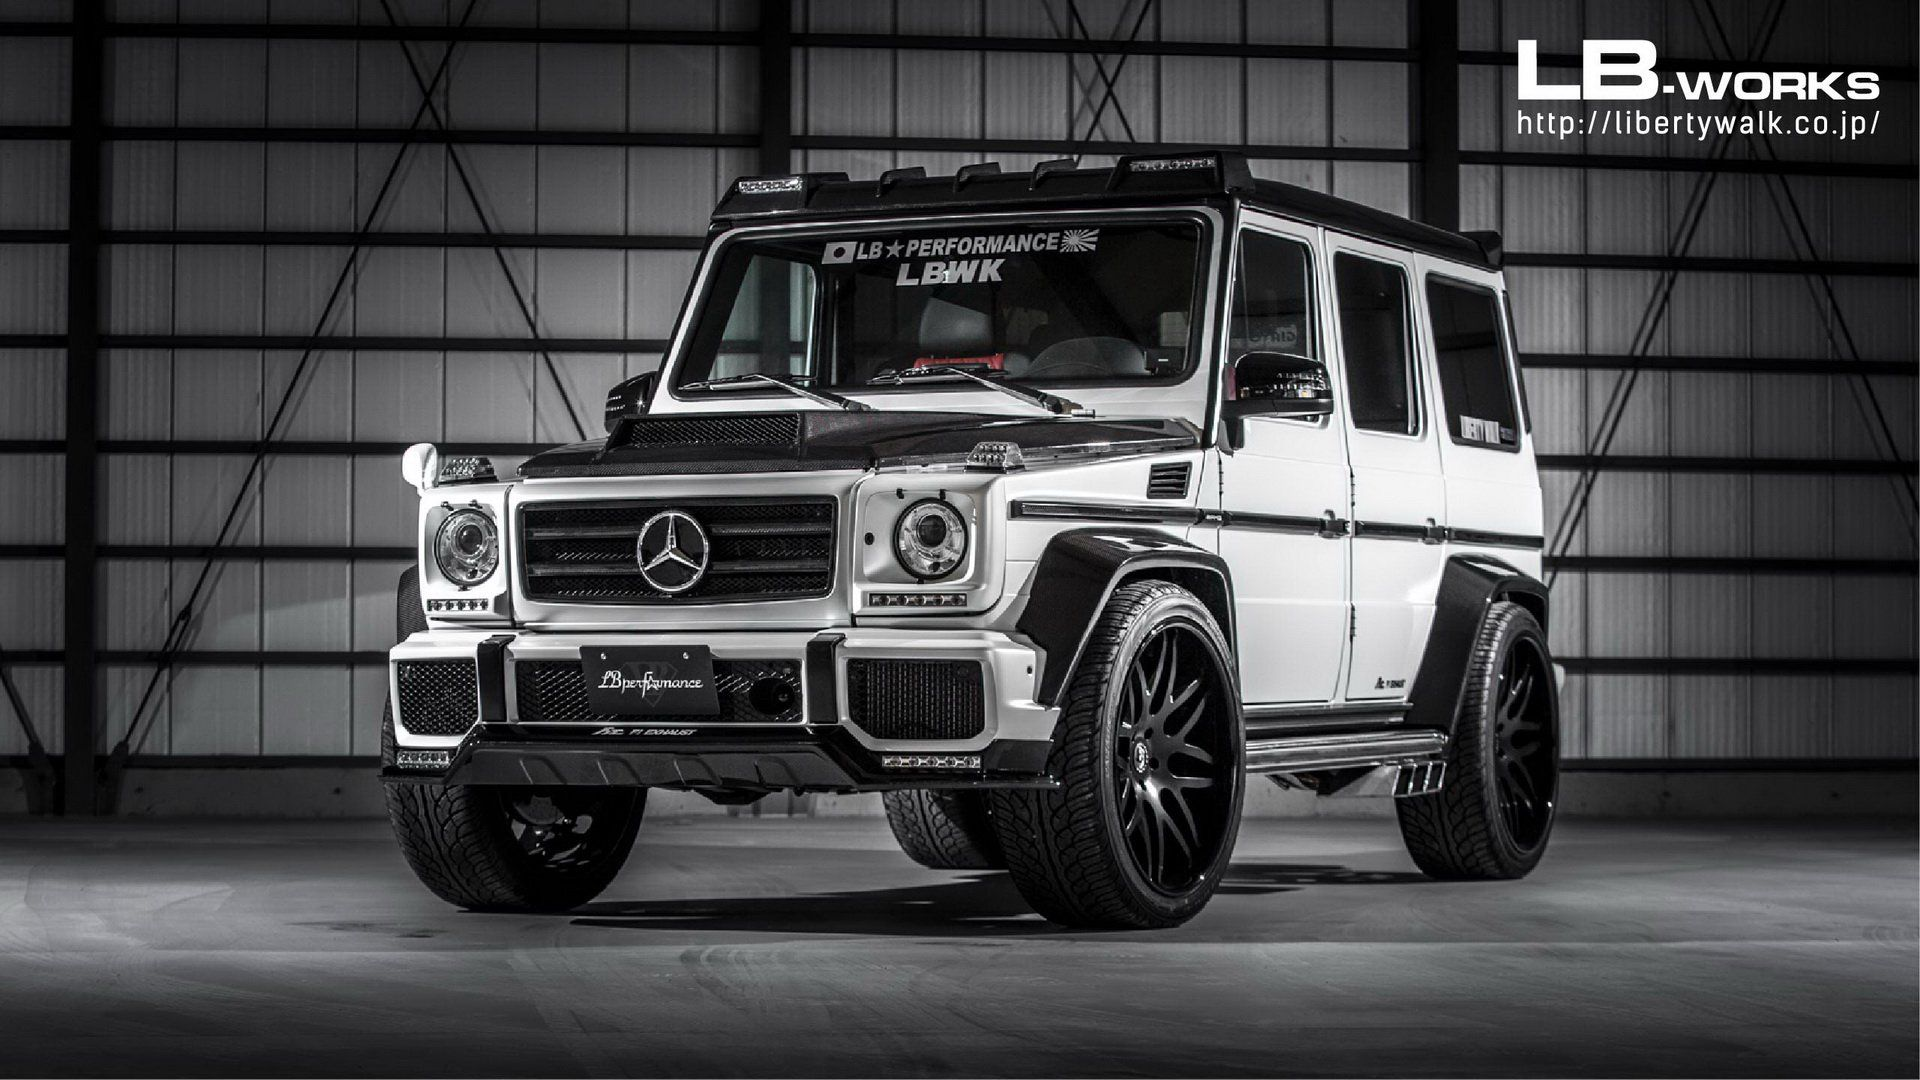 Older Mercedes Amg G63 Gets The Liberty Walk Touch Of Extravagance